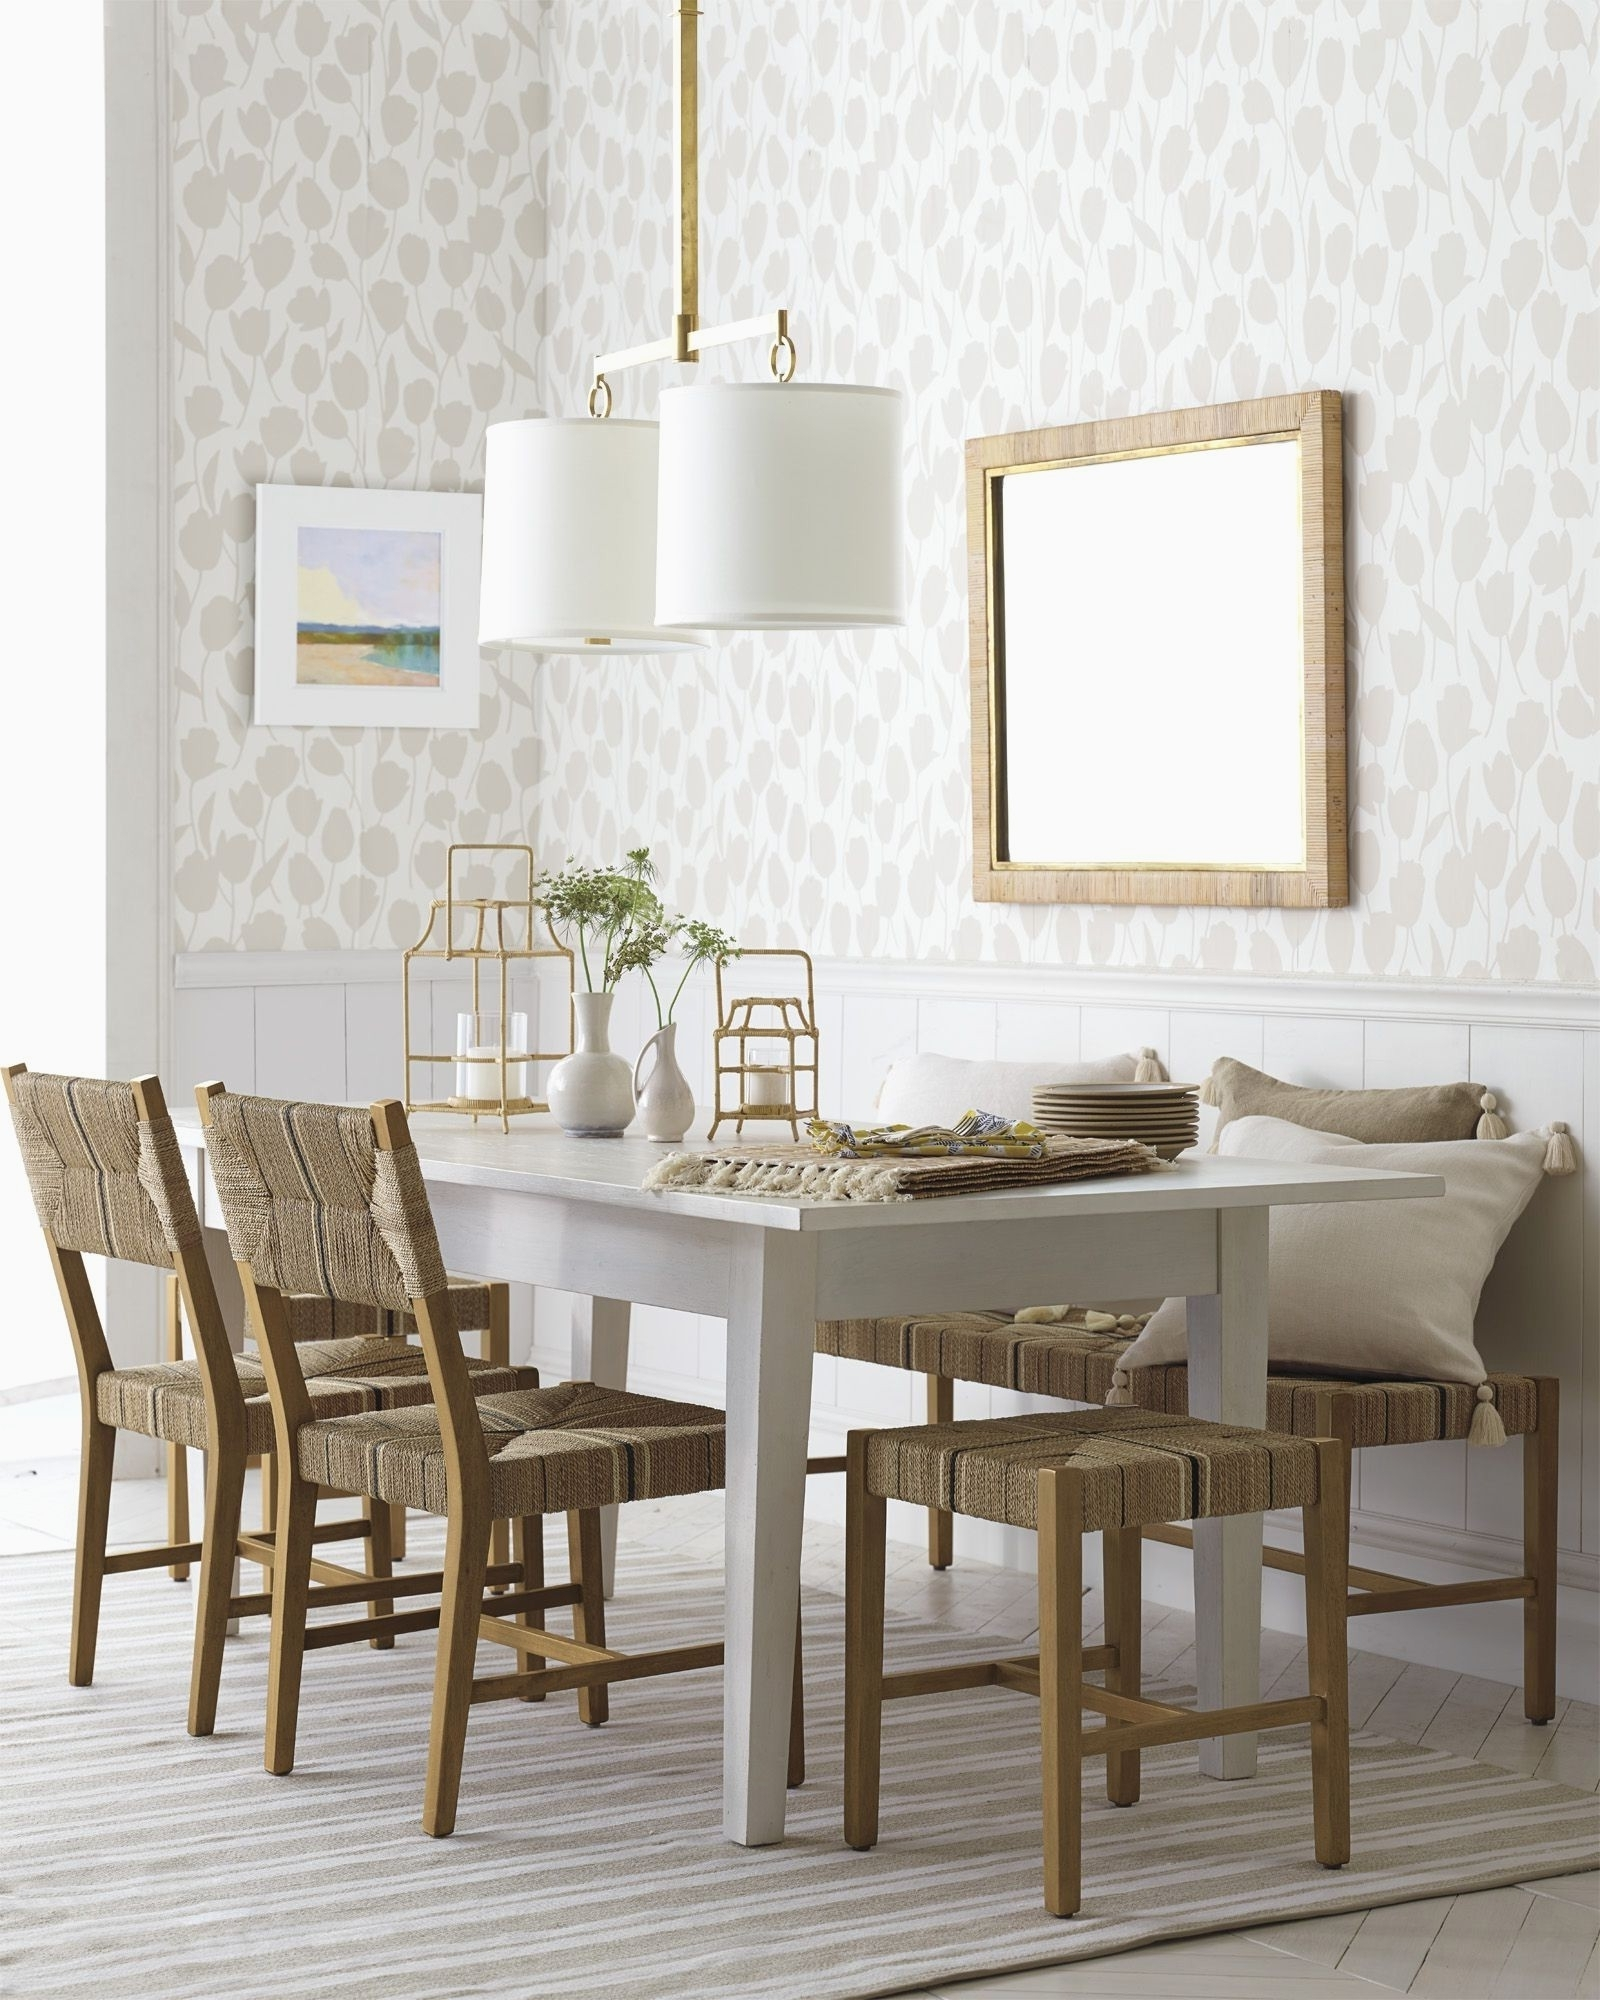 29 New Hollywood Swank Dining Table - Welovedandelion for Fashionable Non Wood Dining Tables